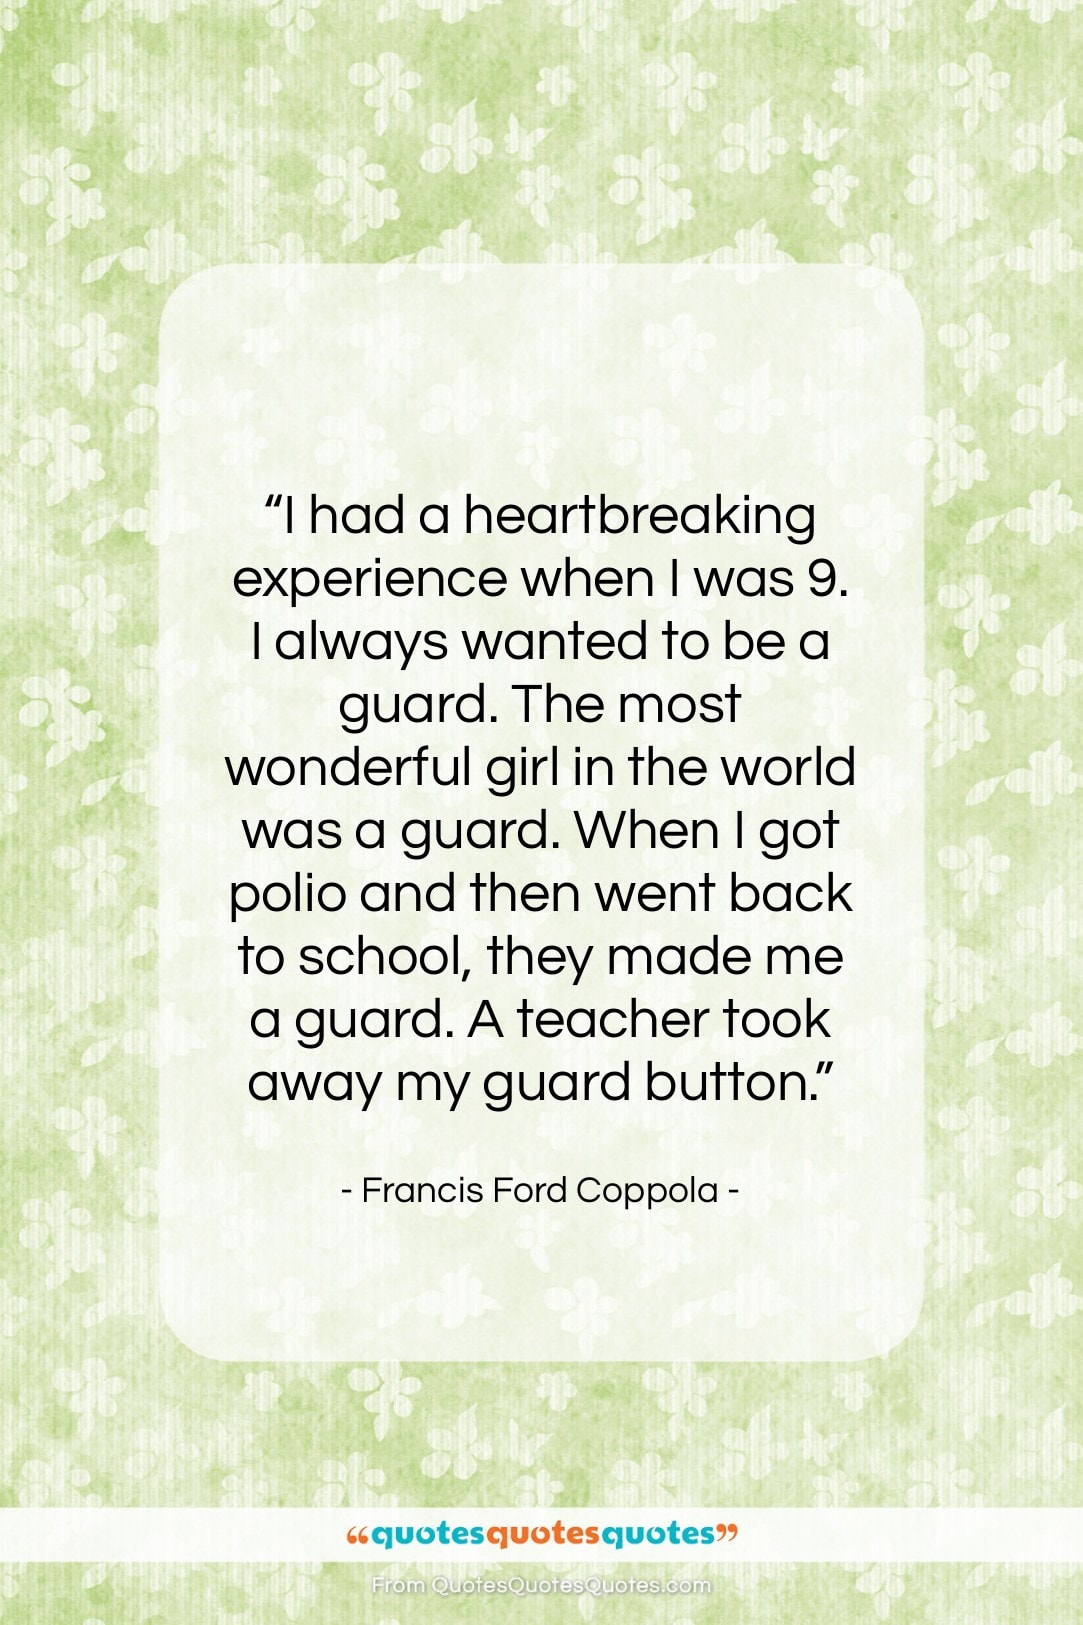 """Francis Ford Coppola quote: """"I had a heartbreaking experience when I…""""- at QuotesQuotesQuotes.com"""